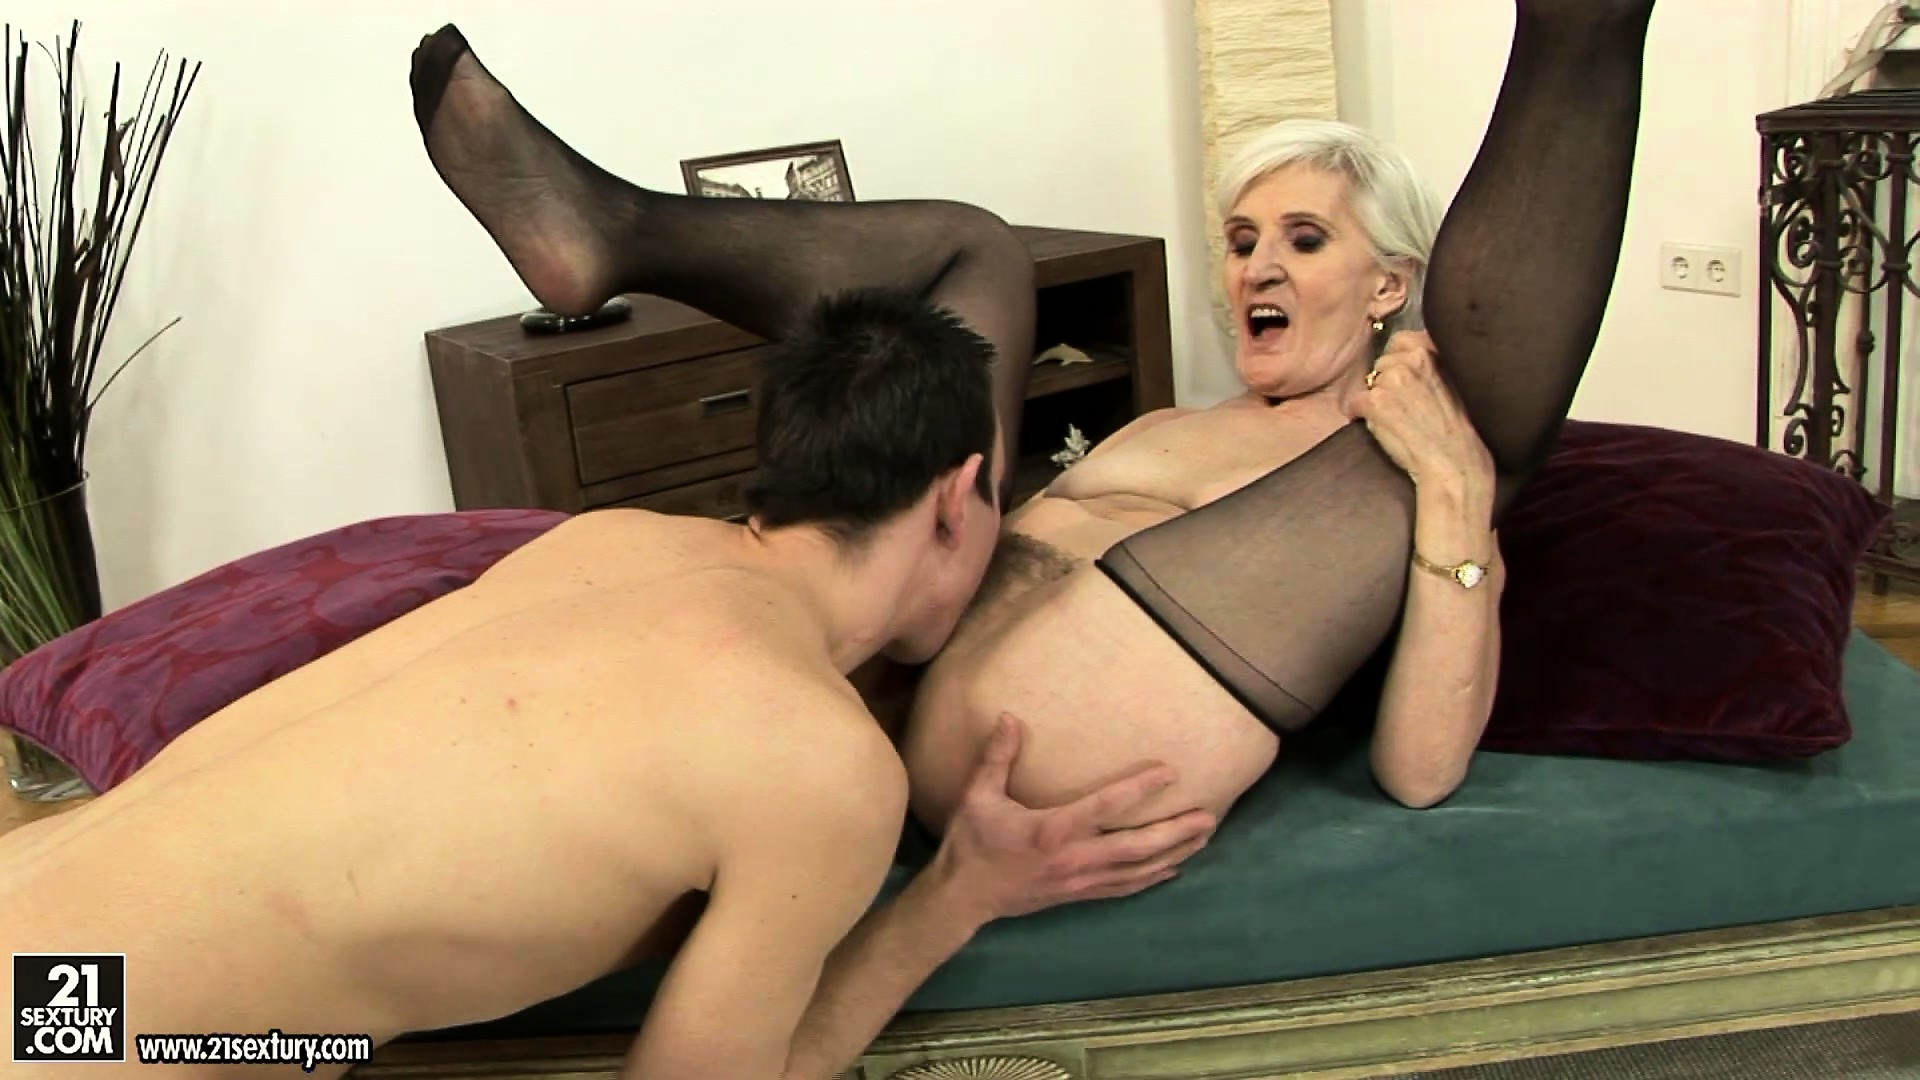 Porno Video of Cyber-granny Found Herself A Nice Piece Of Young Meat To Eat Her Wrinkly Fur Patch